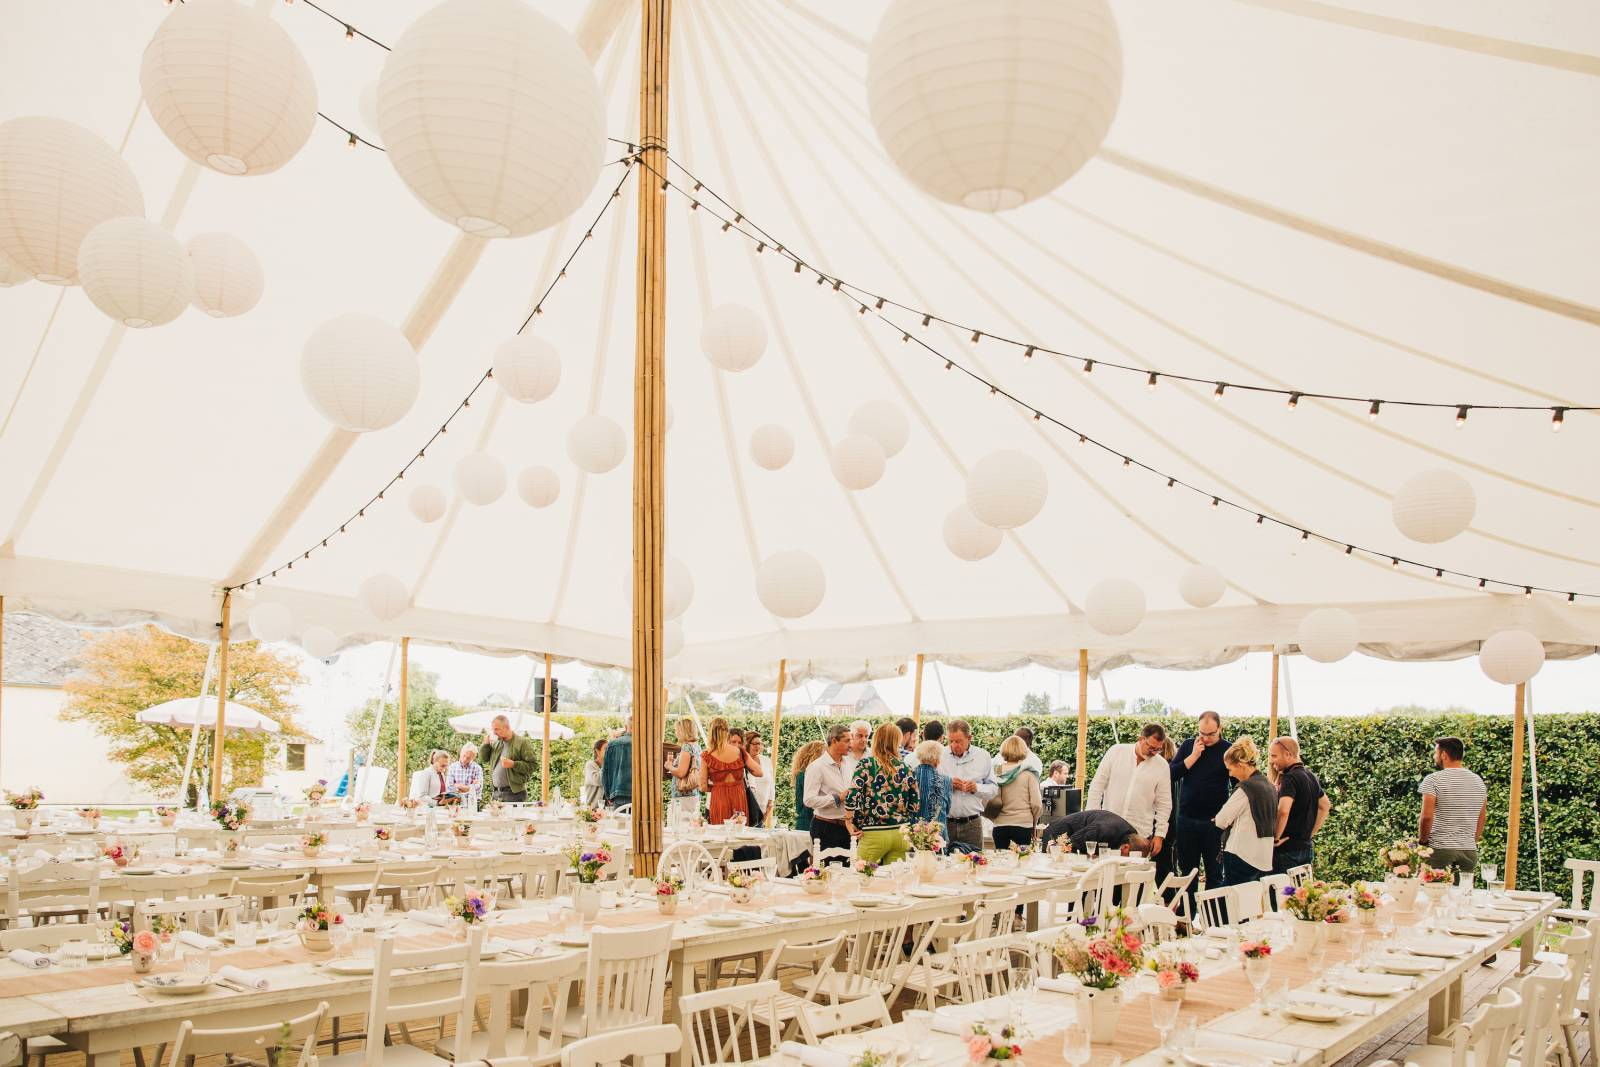 Be Your Guest - Wedding Planner - House of Weddings11-TENTE-2019-Cedric Demeester